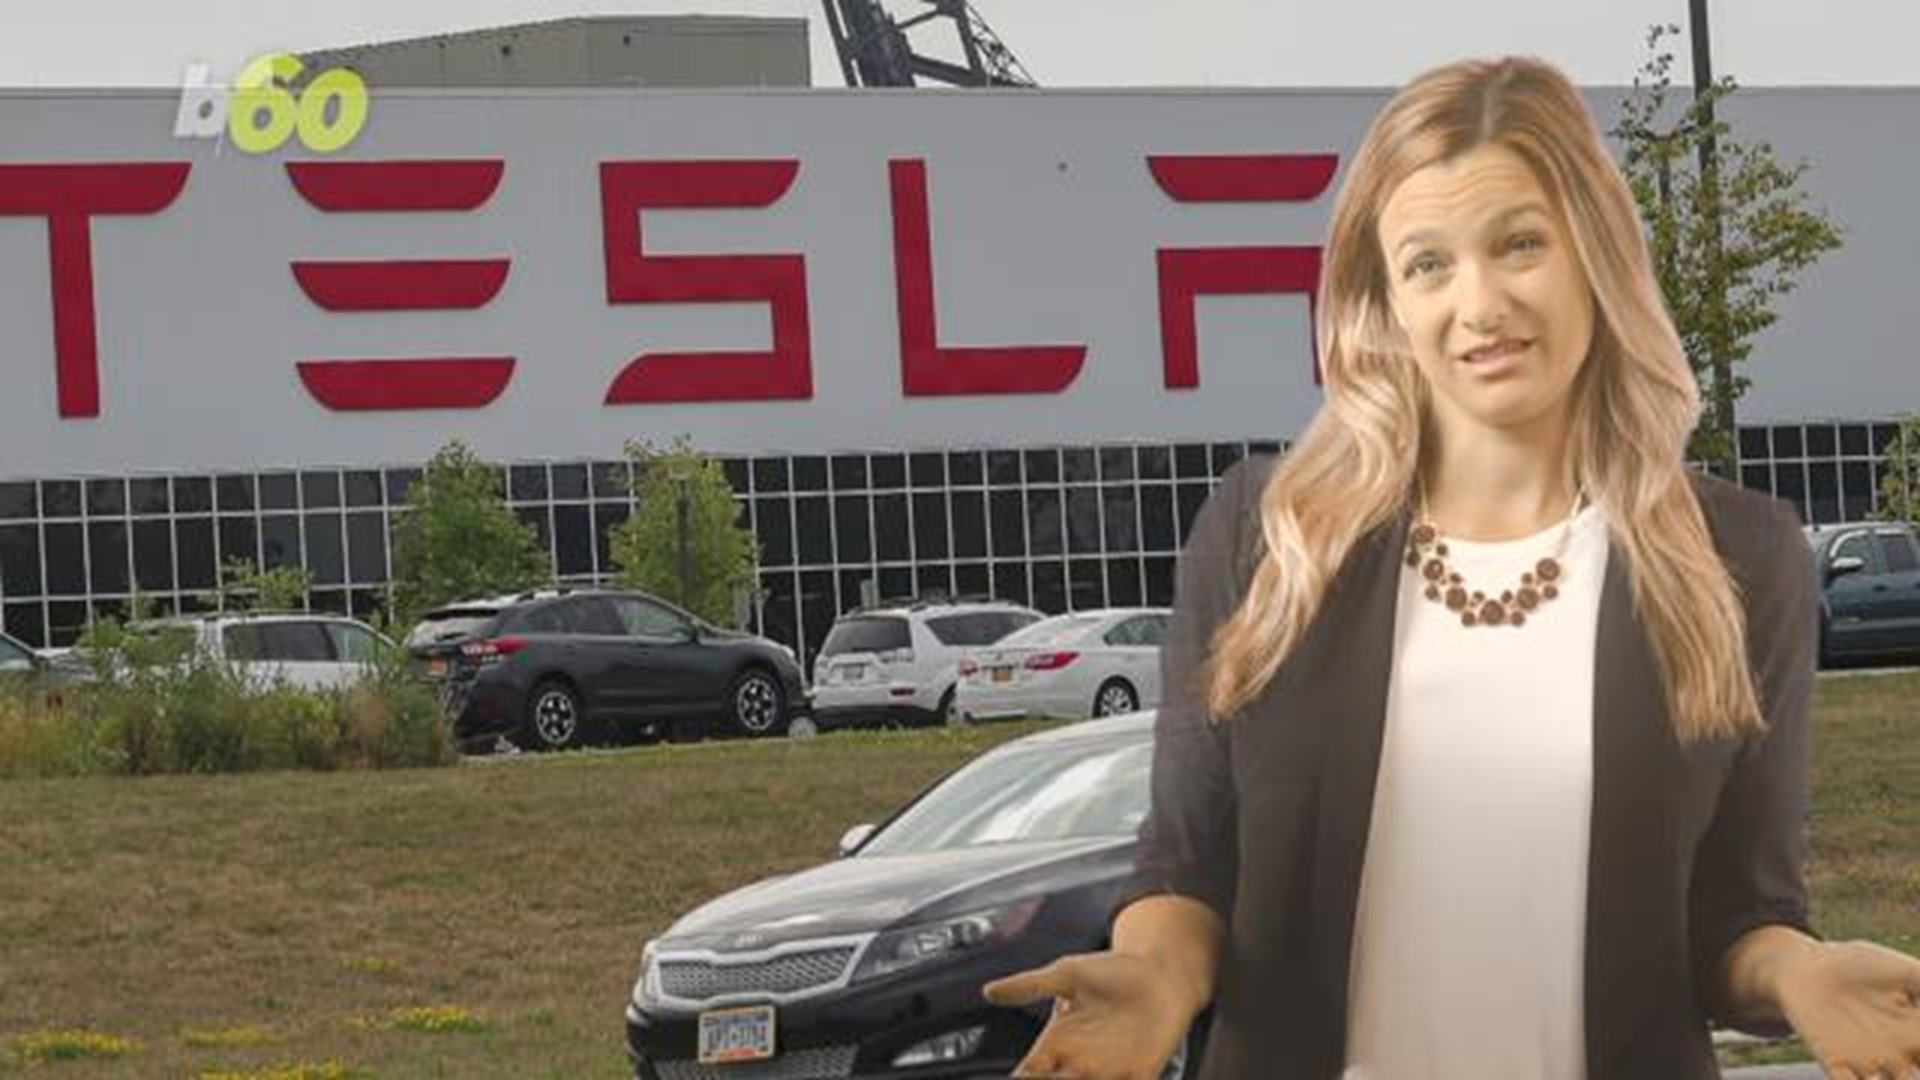 Tesla Cars Will Soon Add Video Streaming Feature Says Elon ...